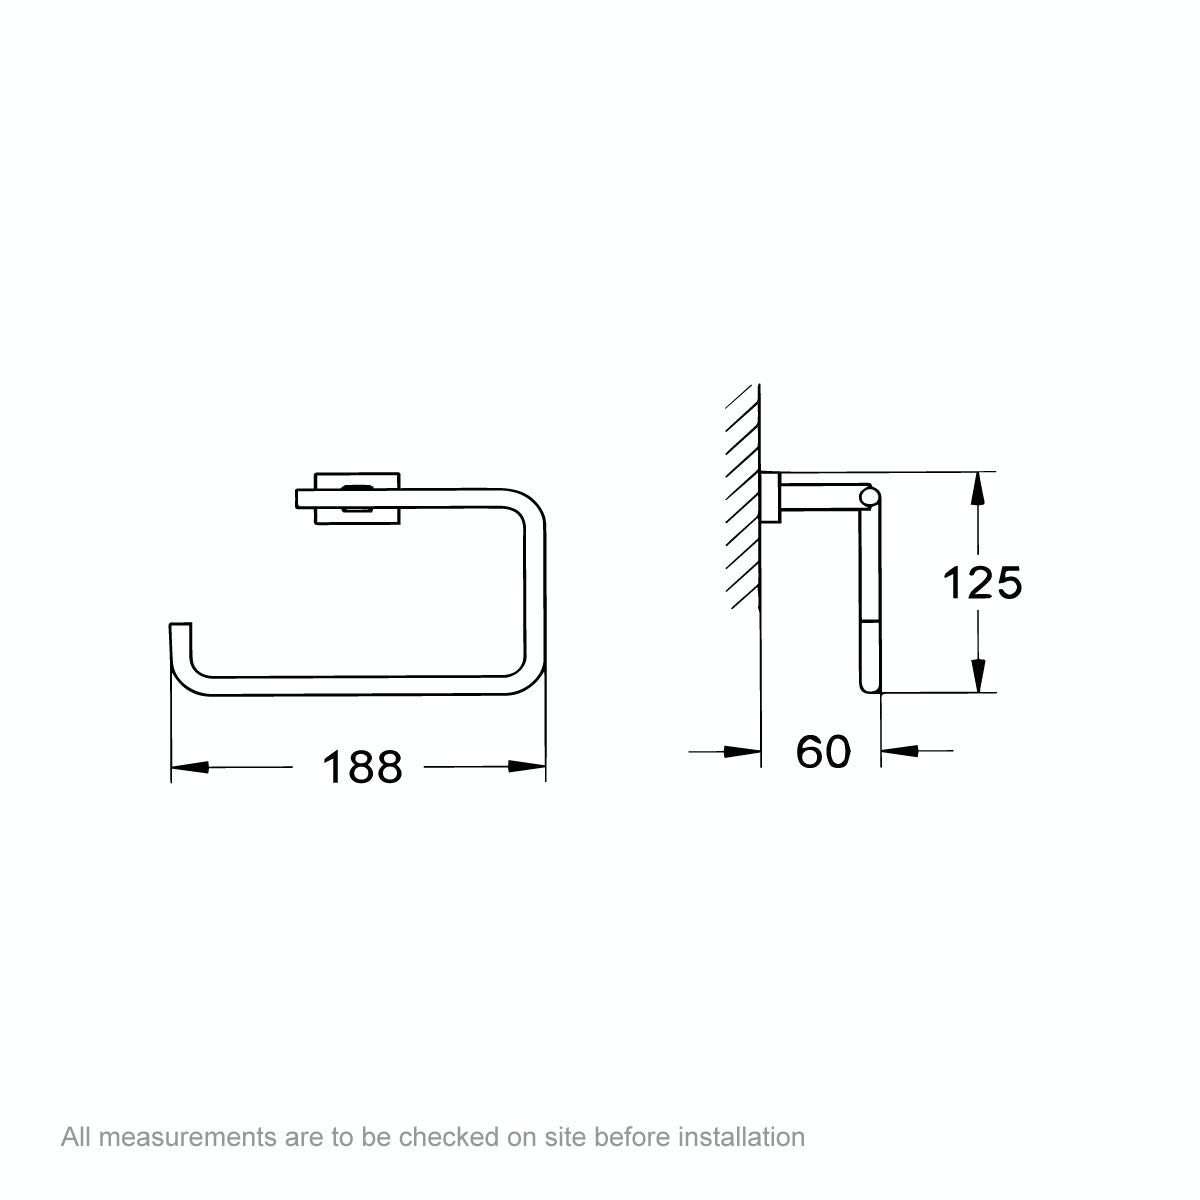 Dimensions for Grohe Essentials Cube towel ring